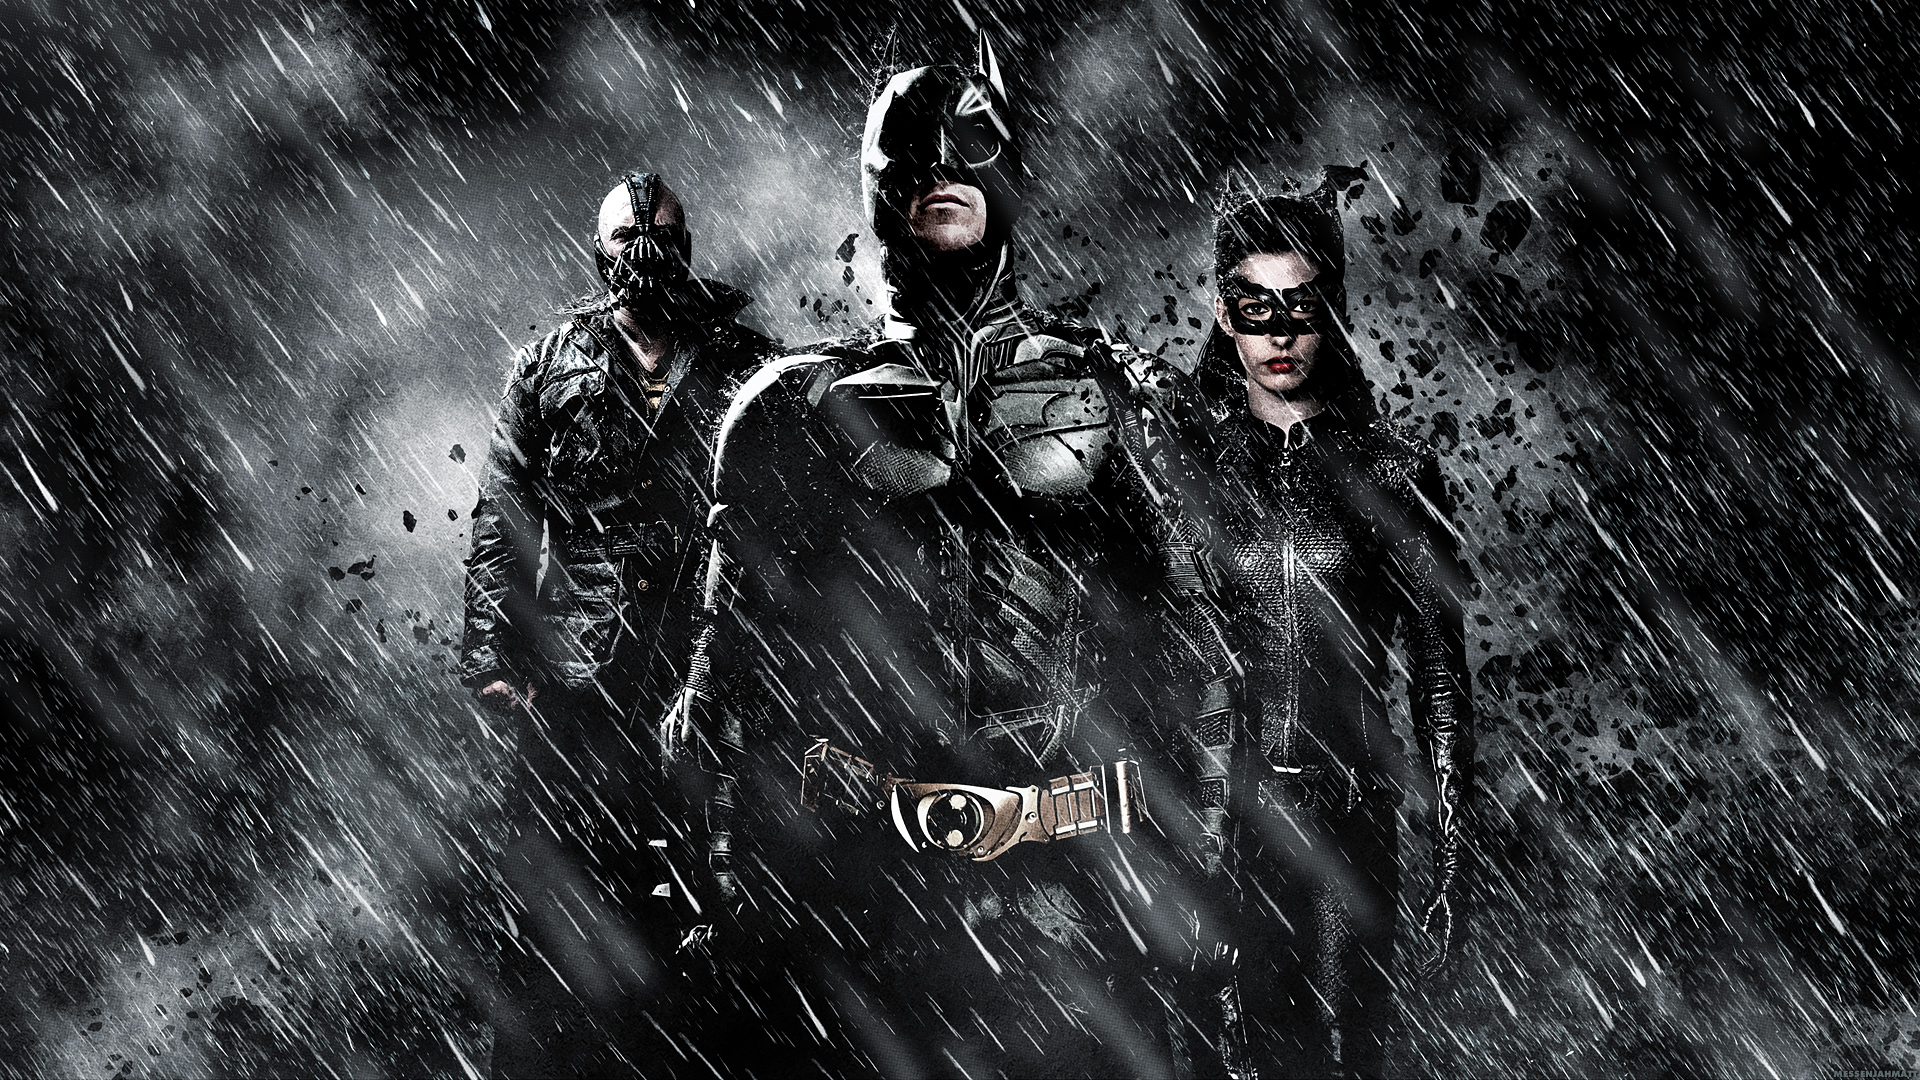 the_dark_knight_rises_movie-HD